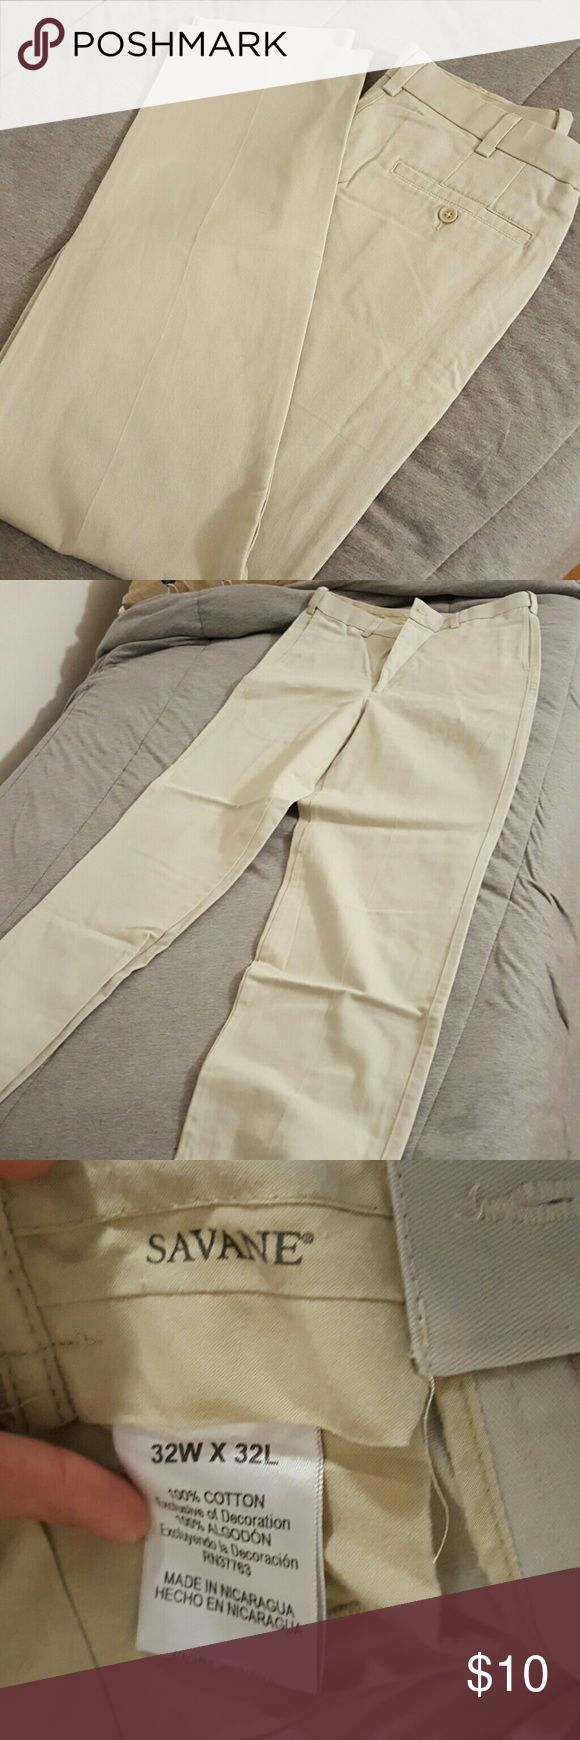 Savane Pleated Pants like new condition, gently worn. no stains Savane Pants Dress